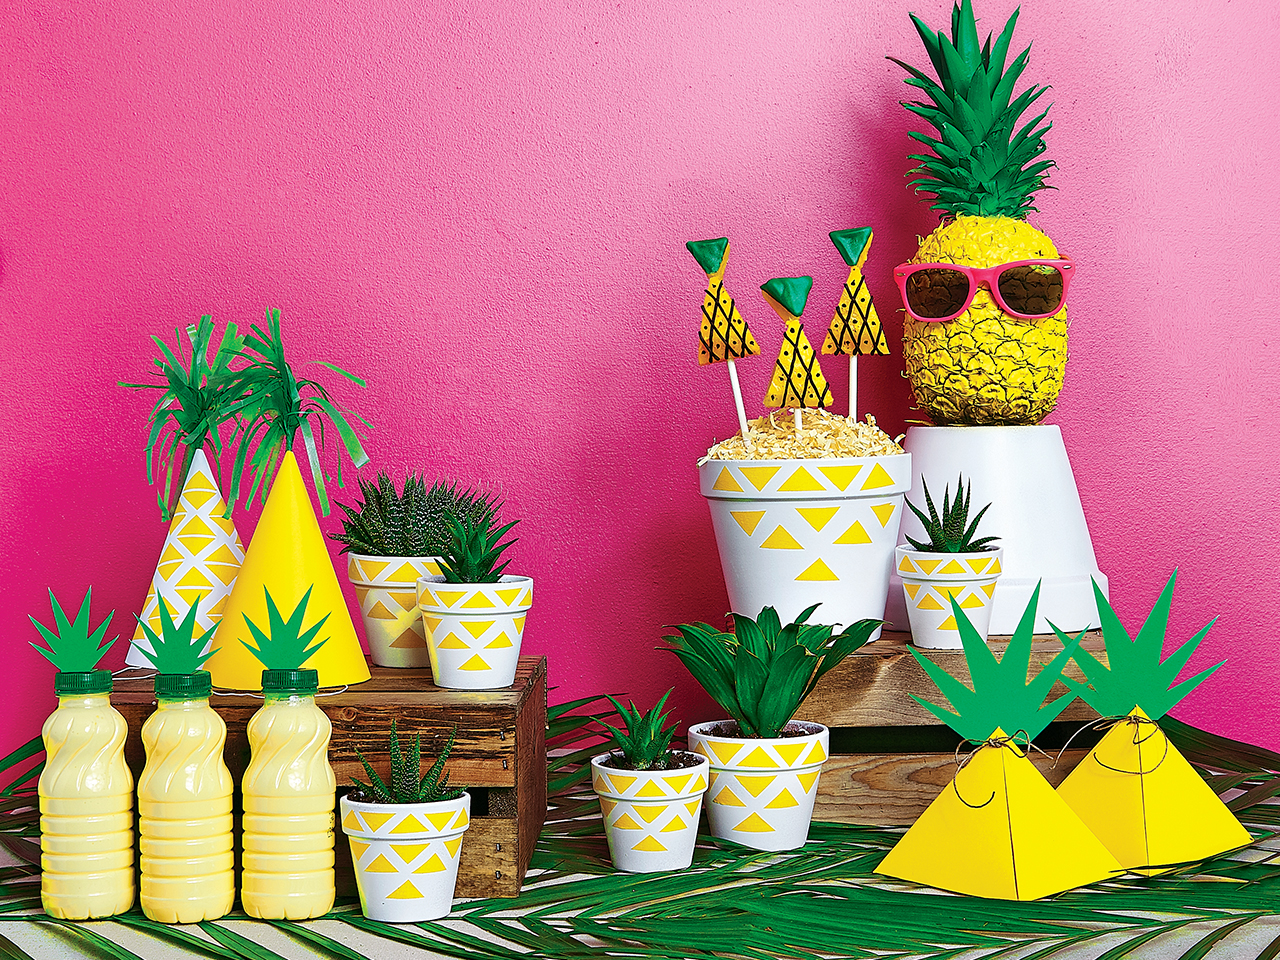 A table spread for a pineapple party